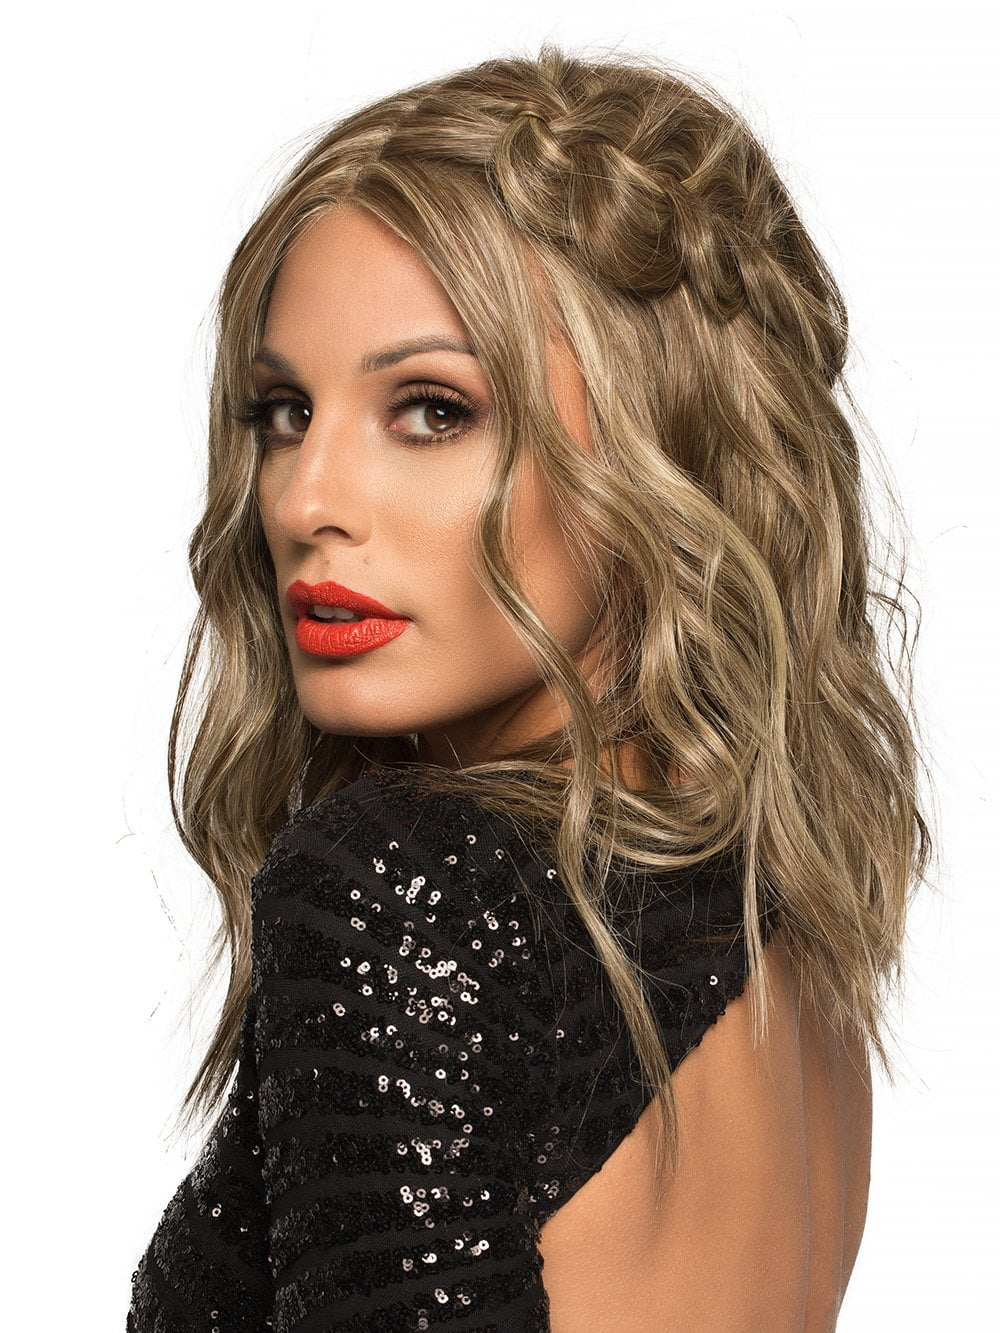 This wig can be curled, straightened, and blow-dried just like the real thing!